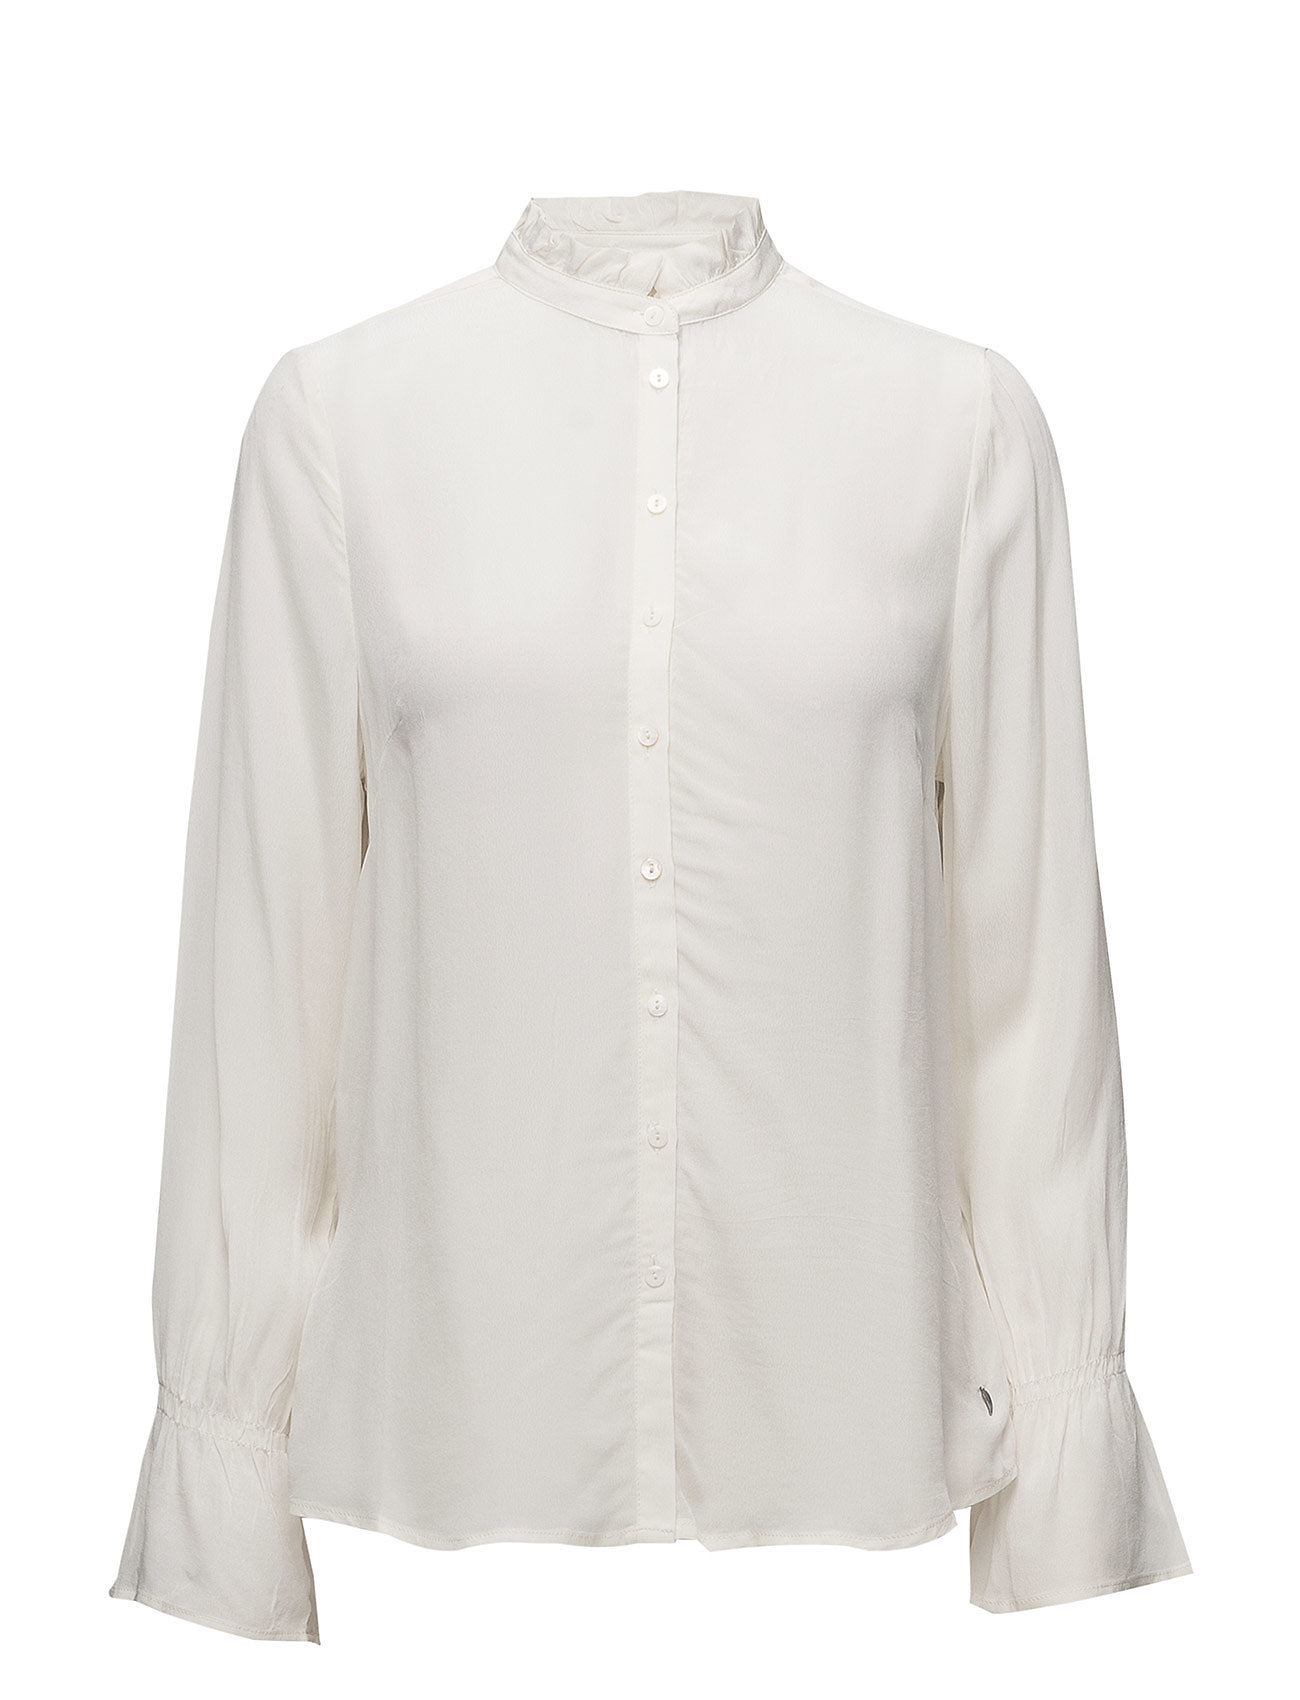 Coster Copenhagen Shirt blouse in chiffon